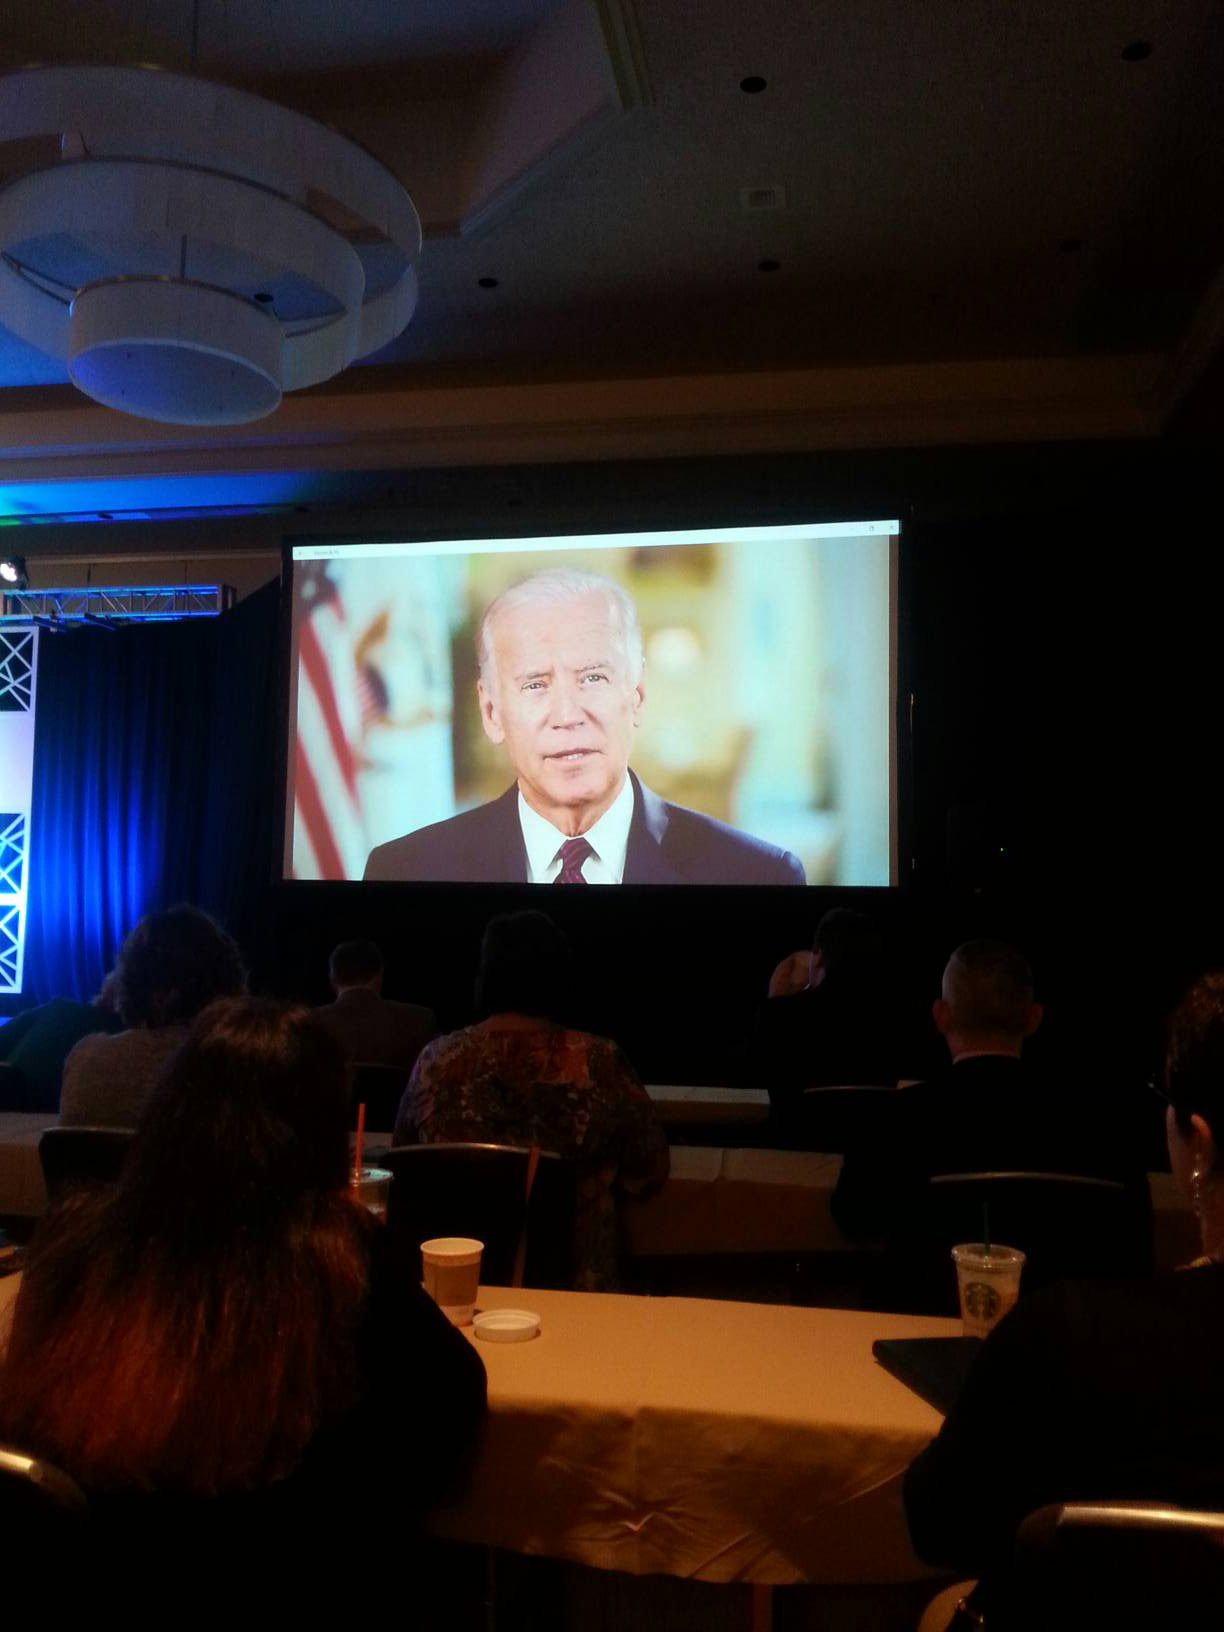 .@VP delivers special message to #ACCCNOC attendees and thanks the community cancer care team members! #cancermoonshot https://t.co/YWKckw9eOU